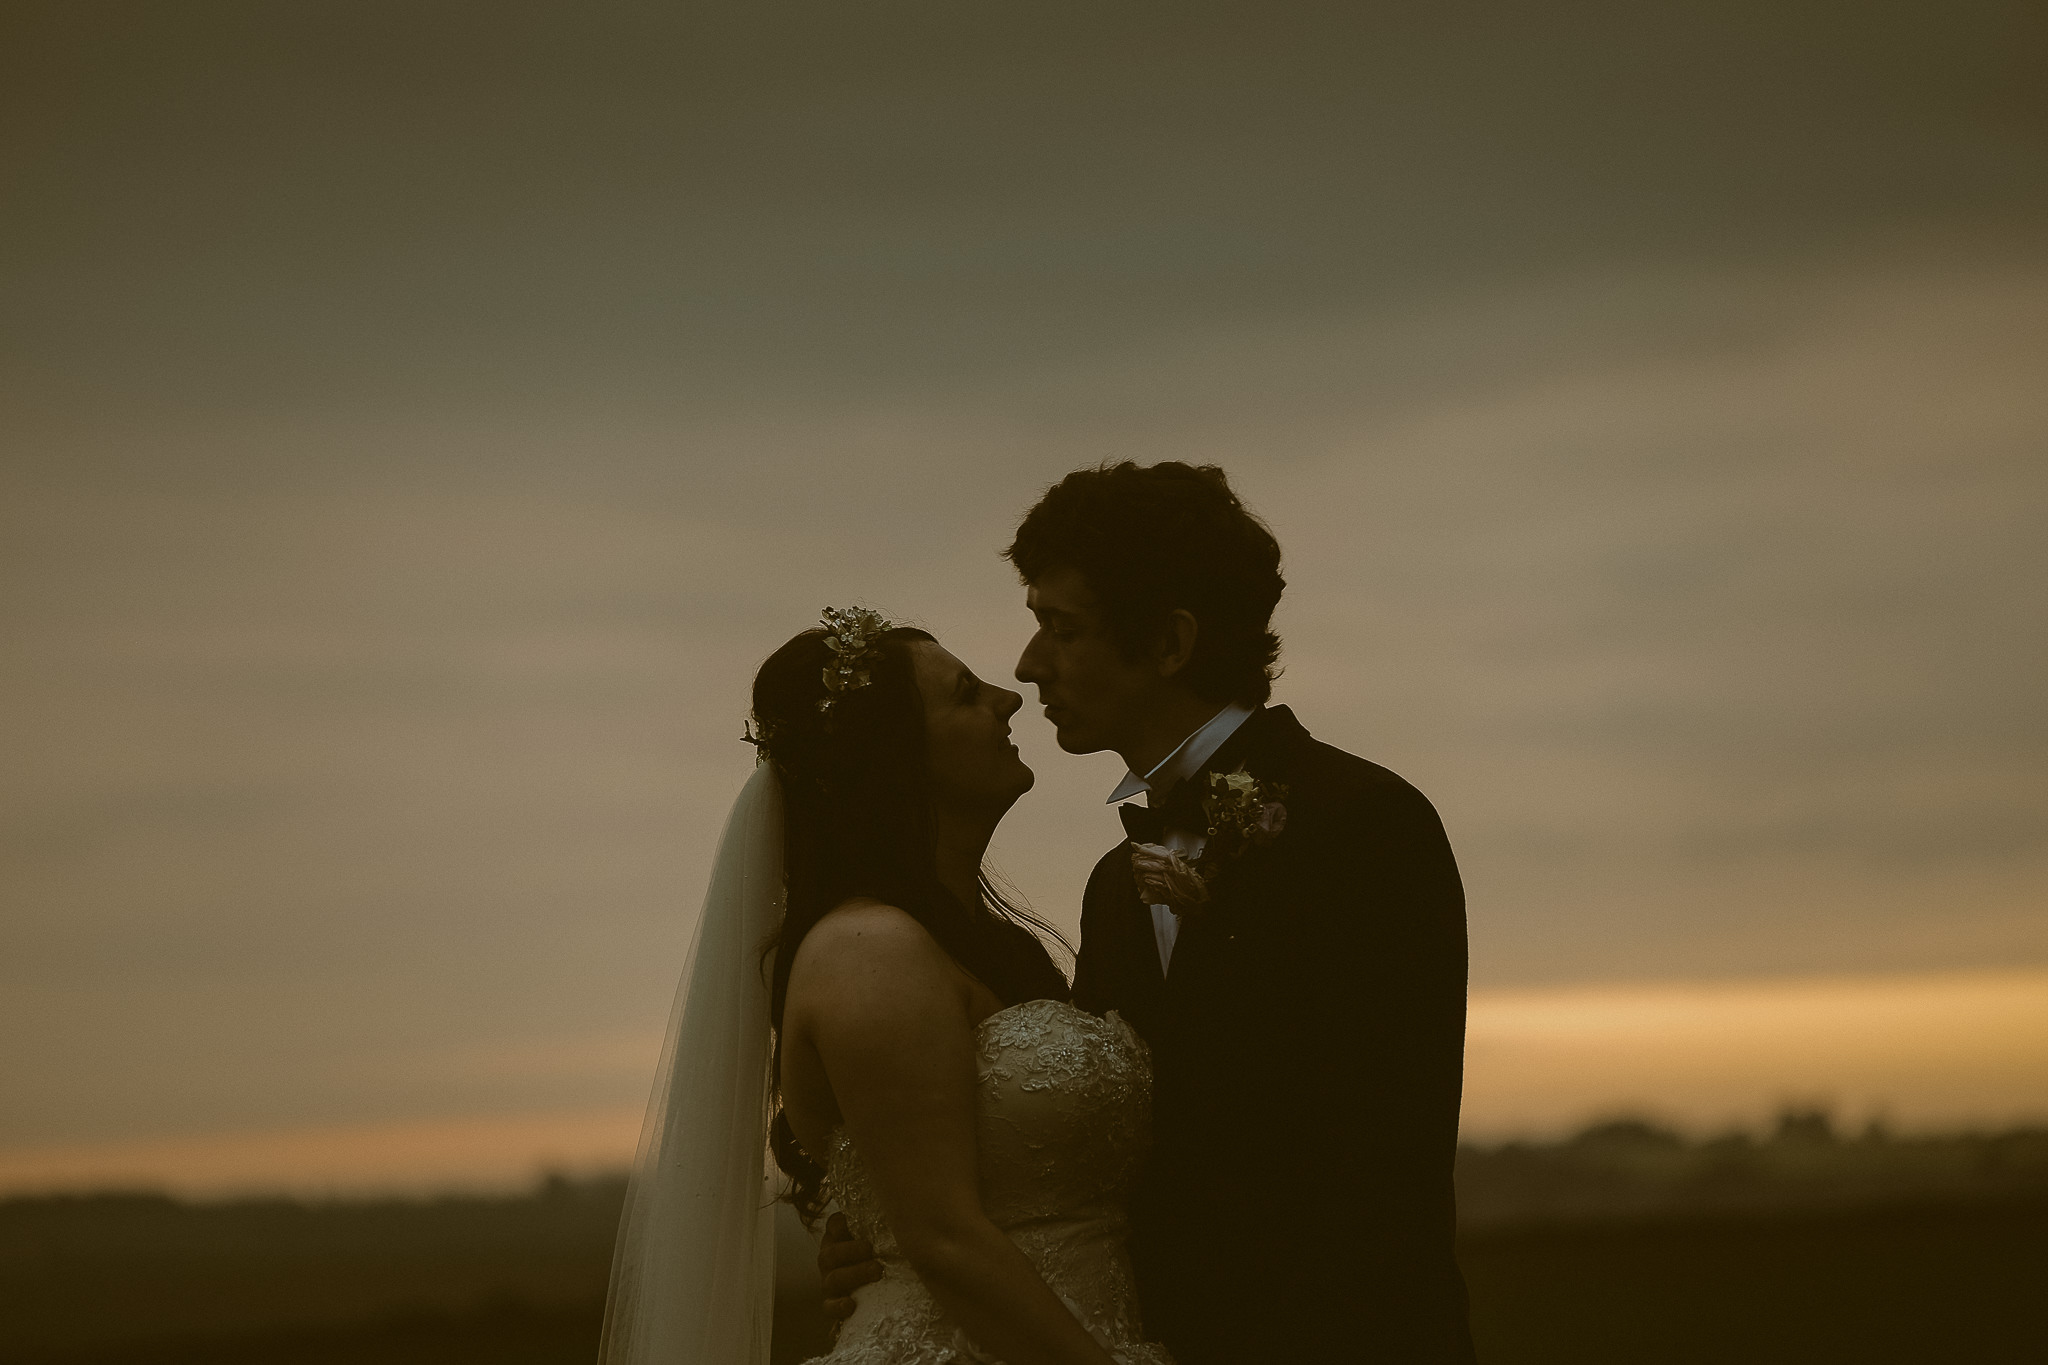 The bride and groom hold each other in the fading golden sunset at Newton Hall Northumberland by Barry Forshaw